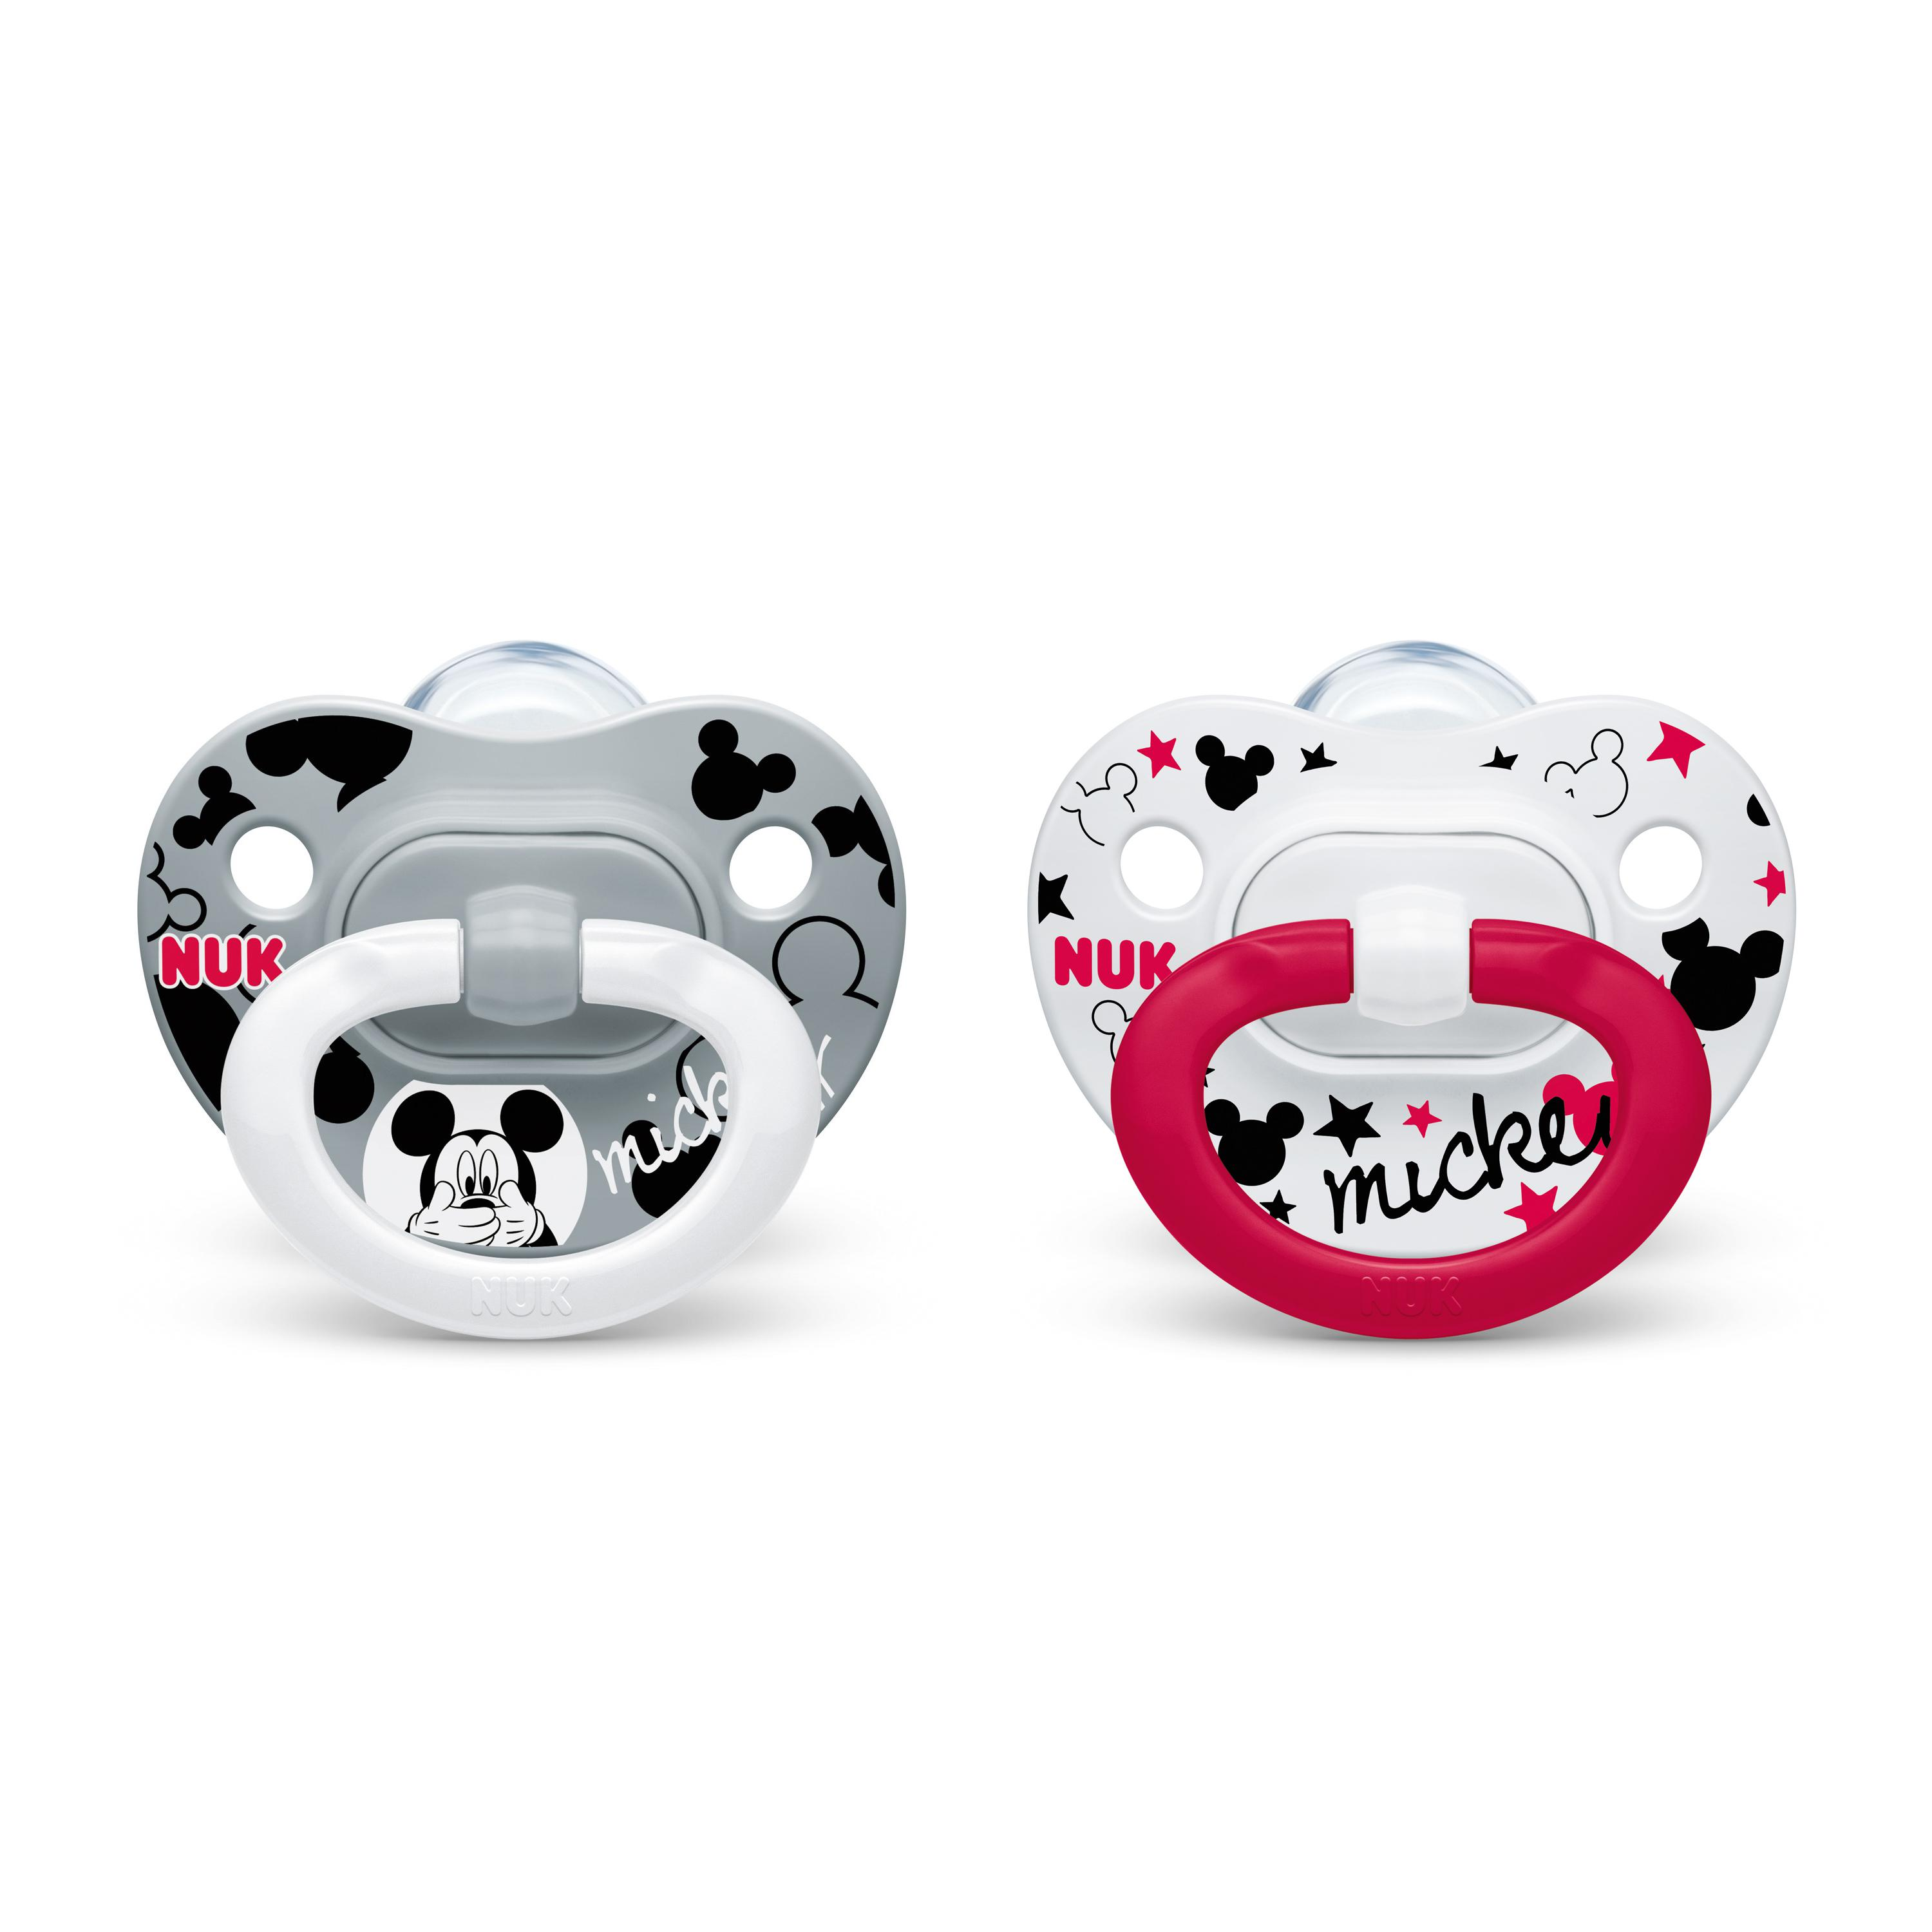 NUK® Disney® Mickey Mouse and Minnie Mouse Orthodontic Pacifiers, 0-6 Months, 2-Pack Product Image 4 of 6